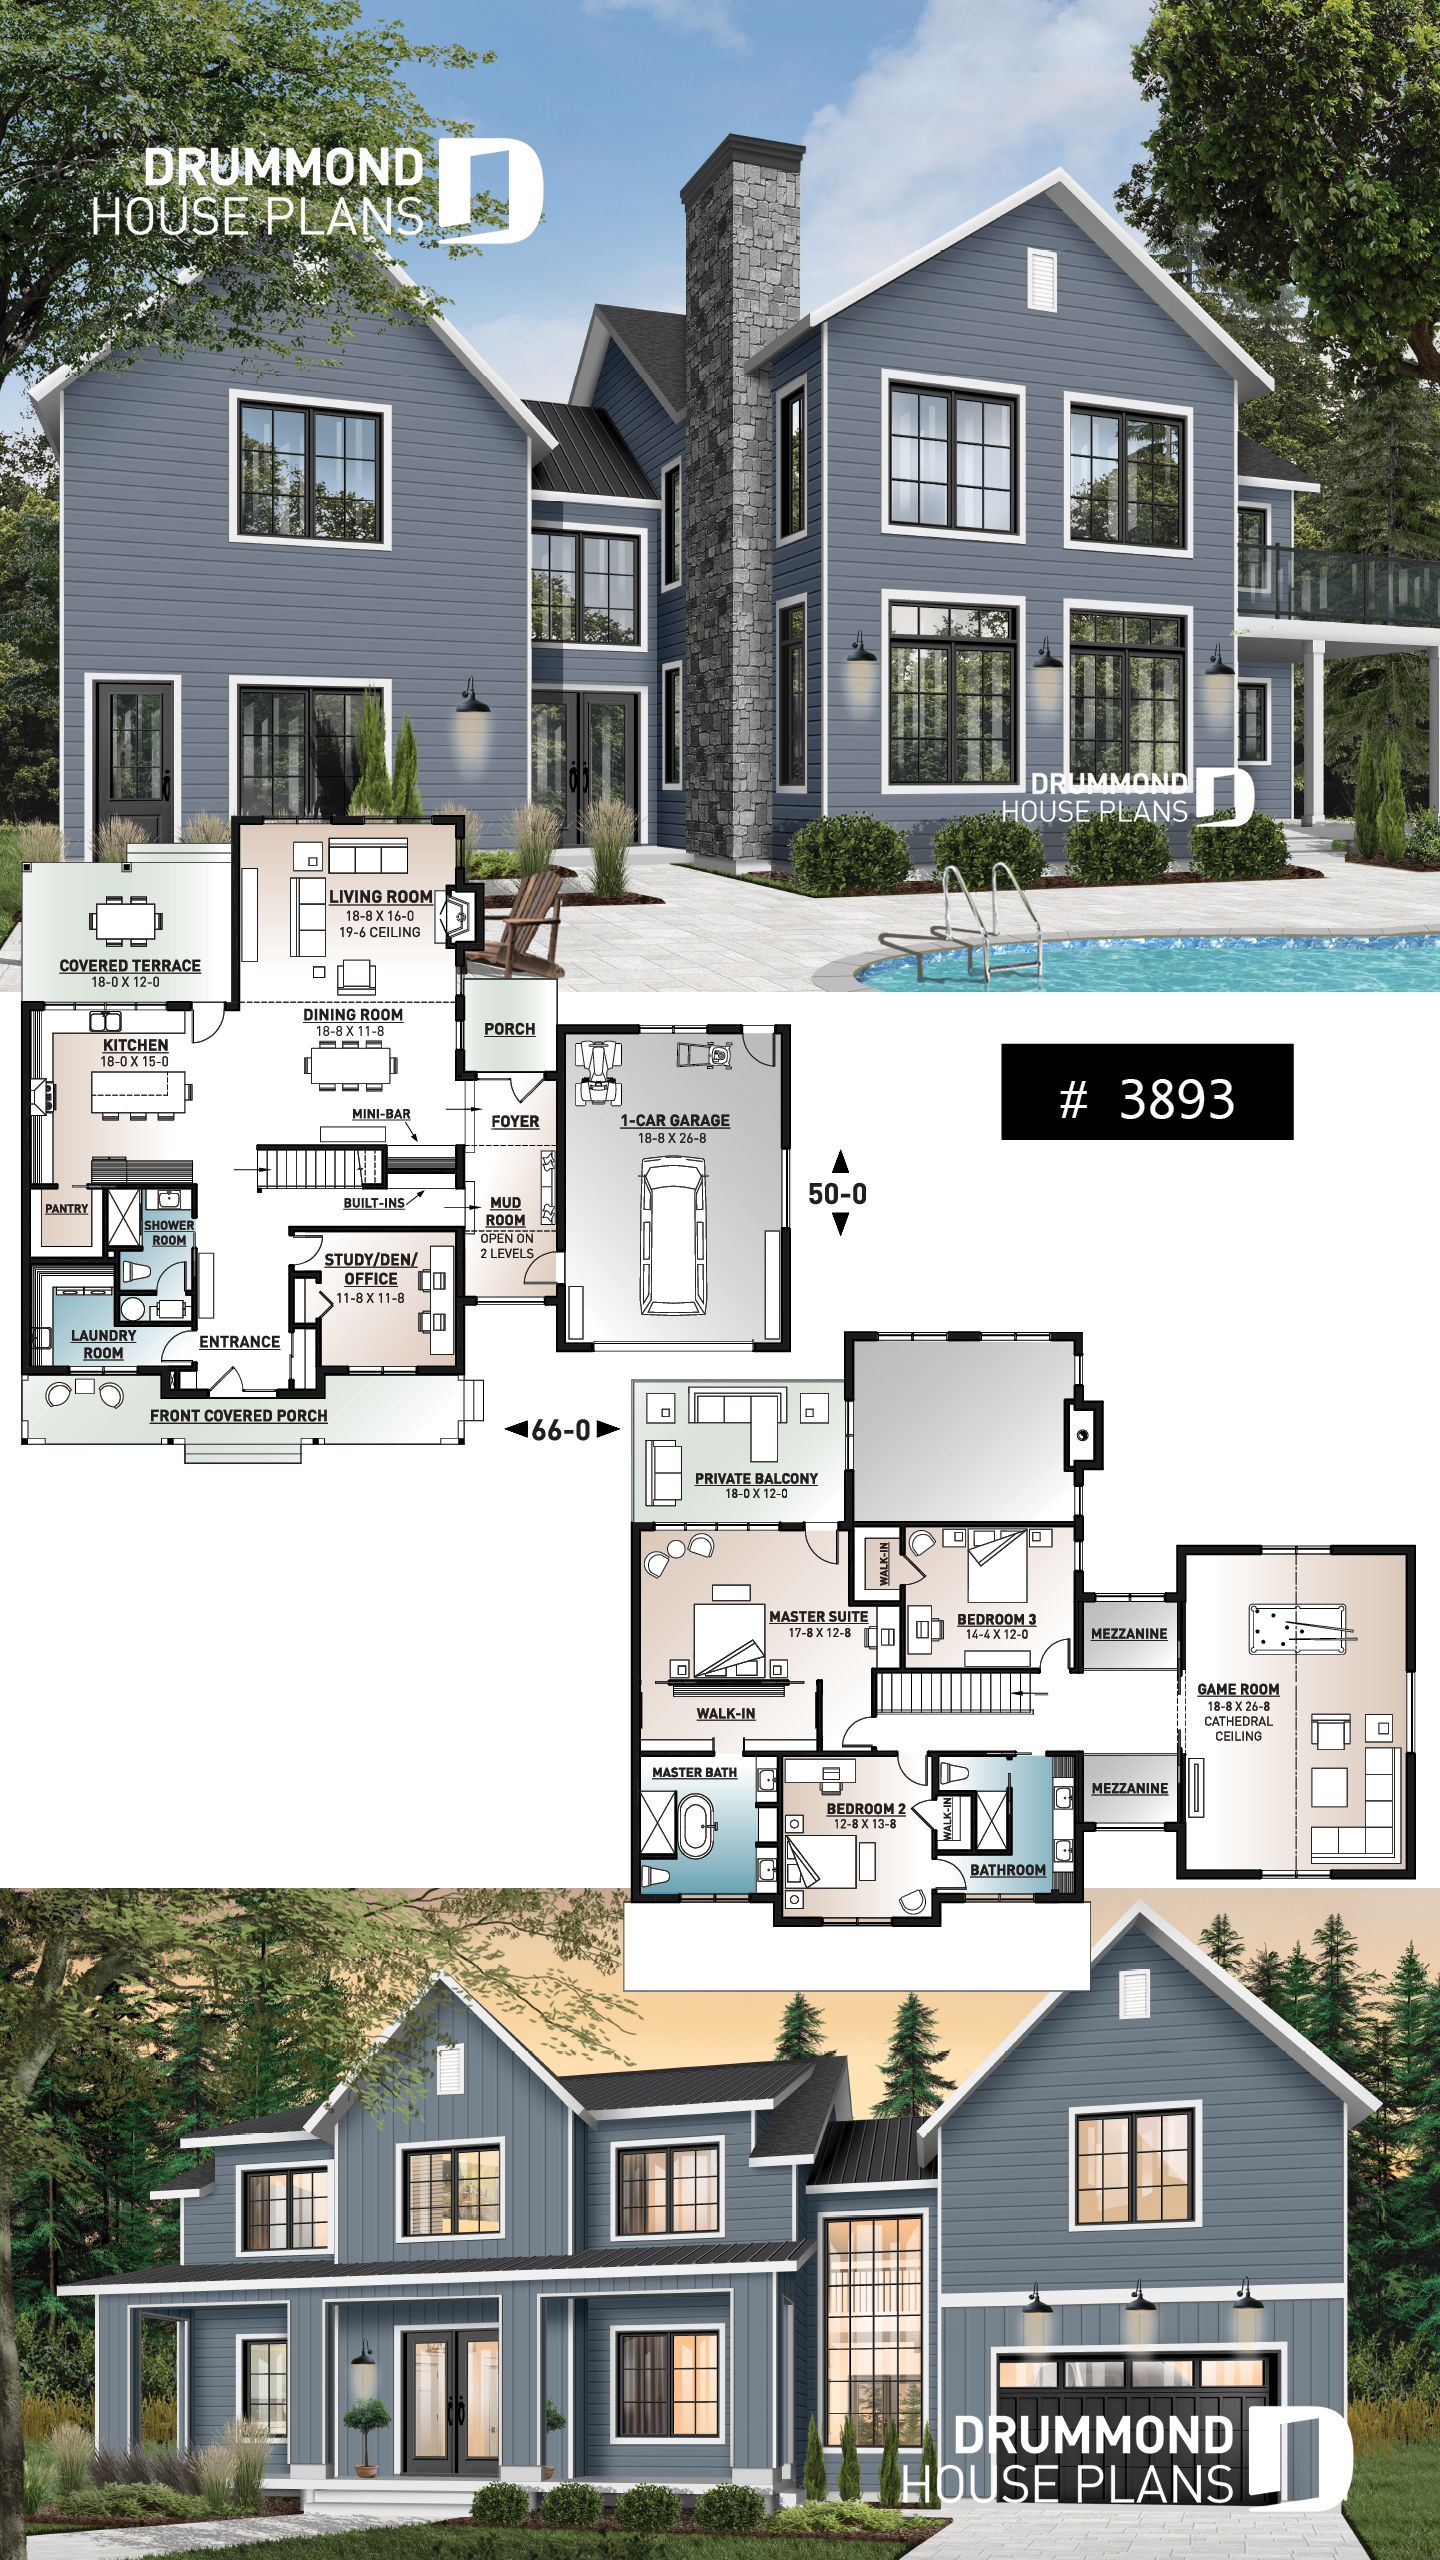 Discover The Plan 3893 Bridge Which Will Please You For Its 3 4 Bedrooms And For Its Farmhouse Styles Modern Farmhouse Plans Modern House Plans Sims 4 House Plans